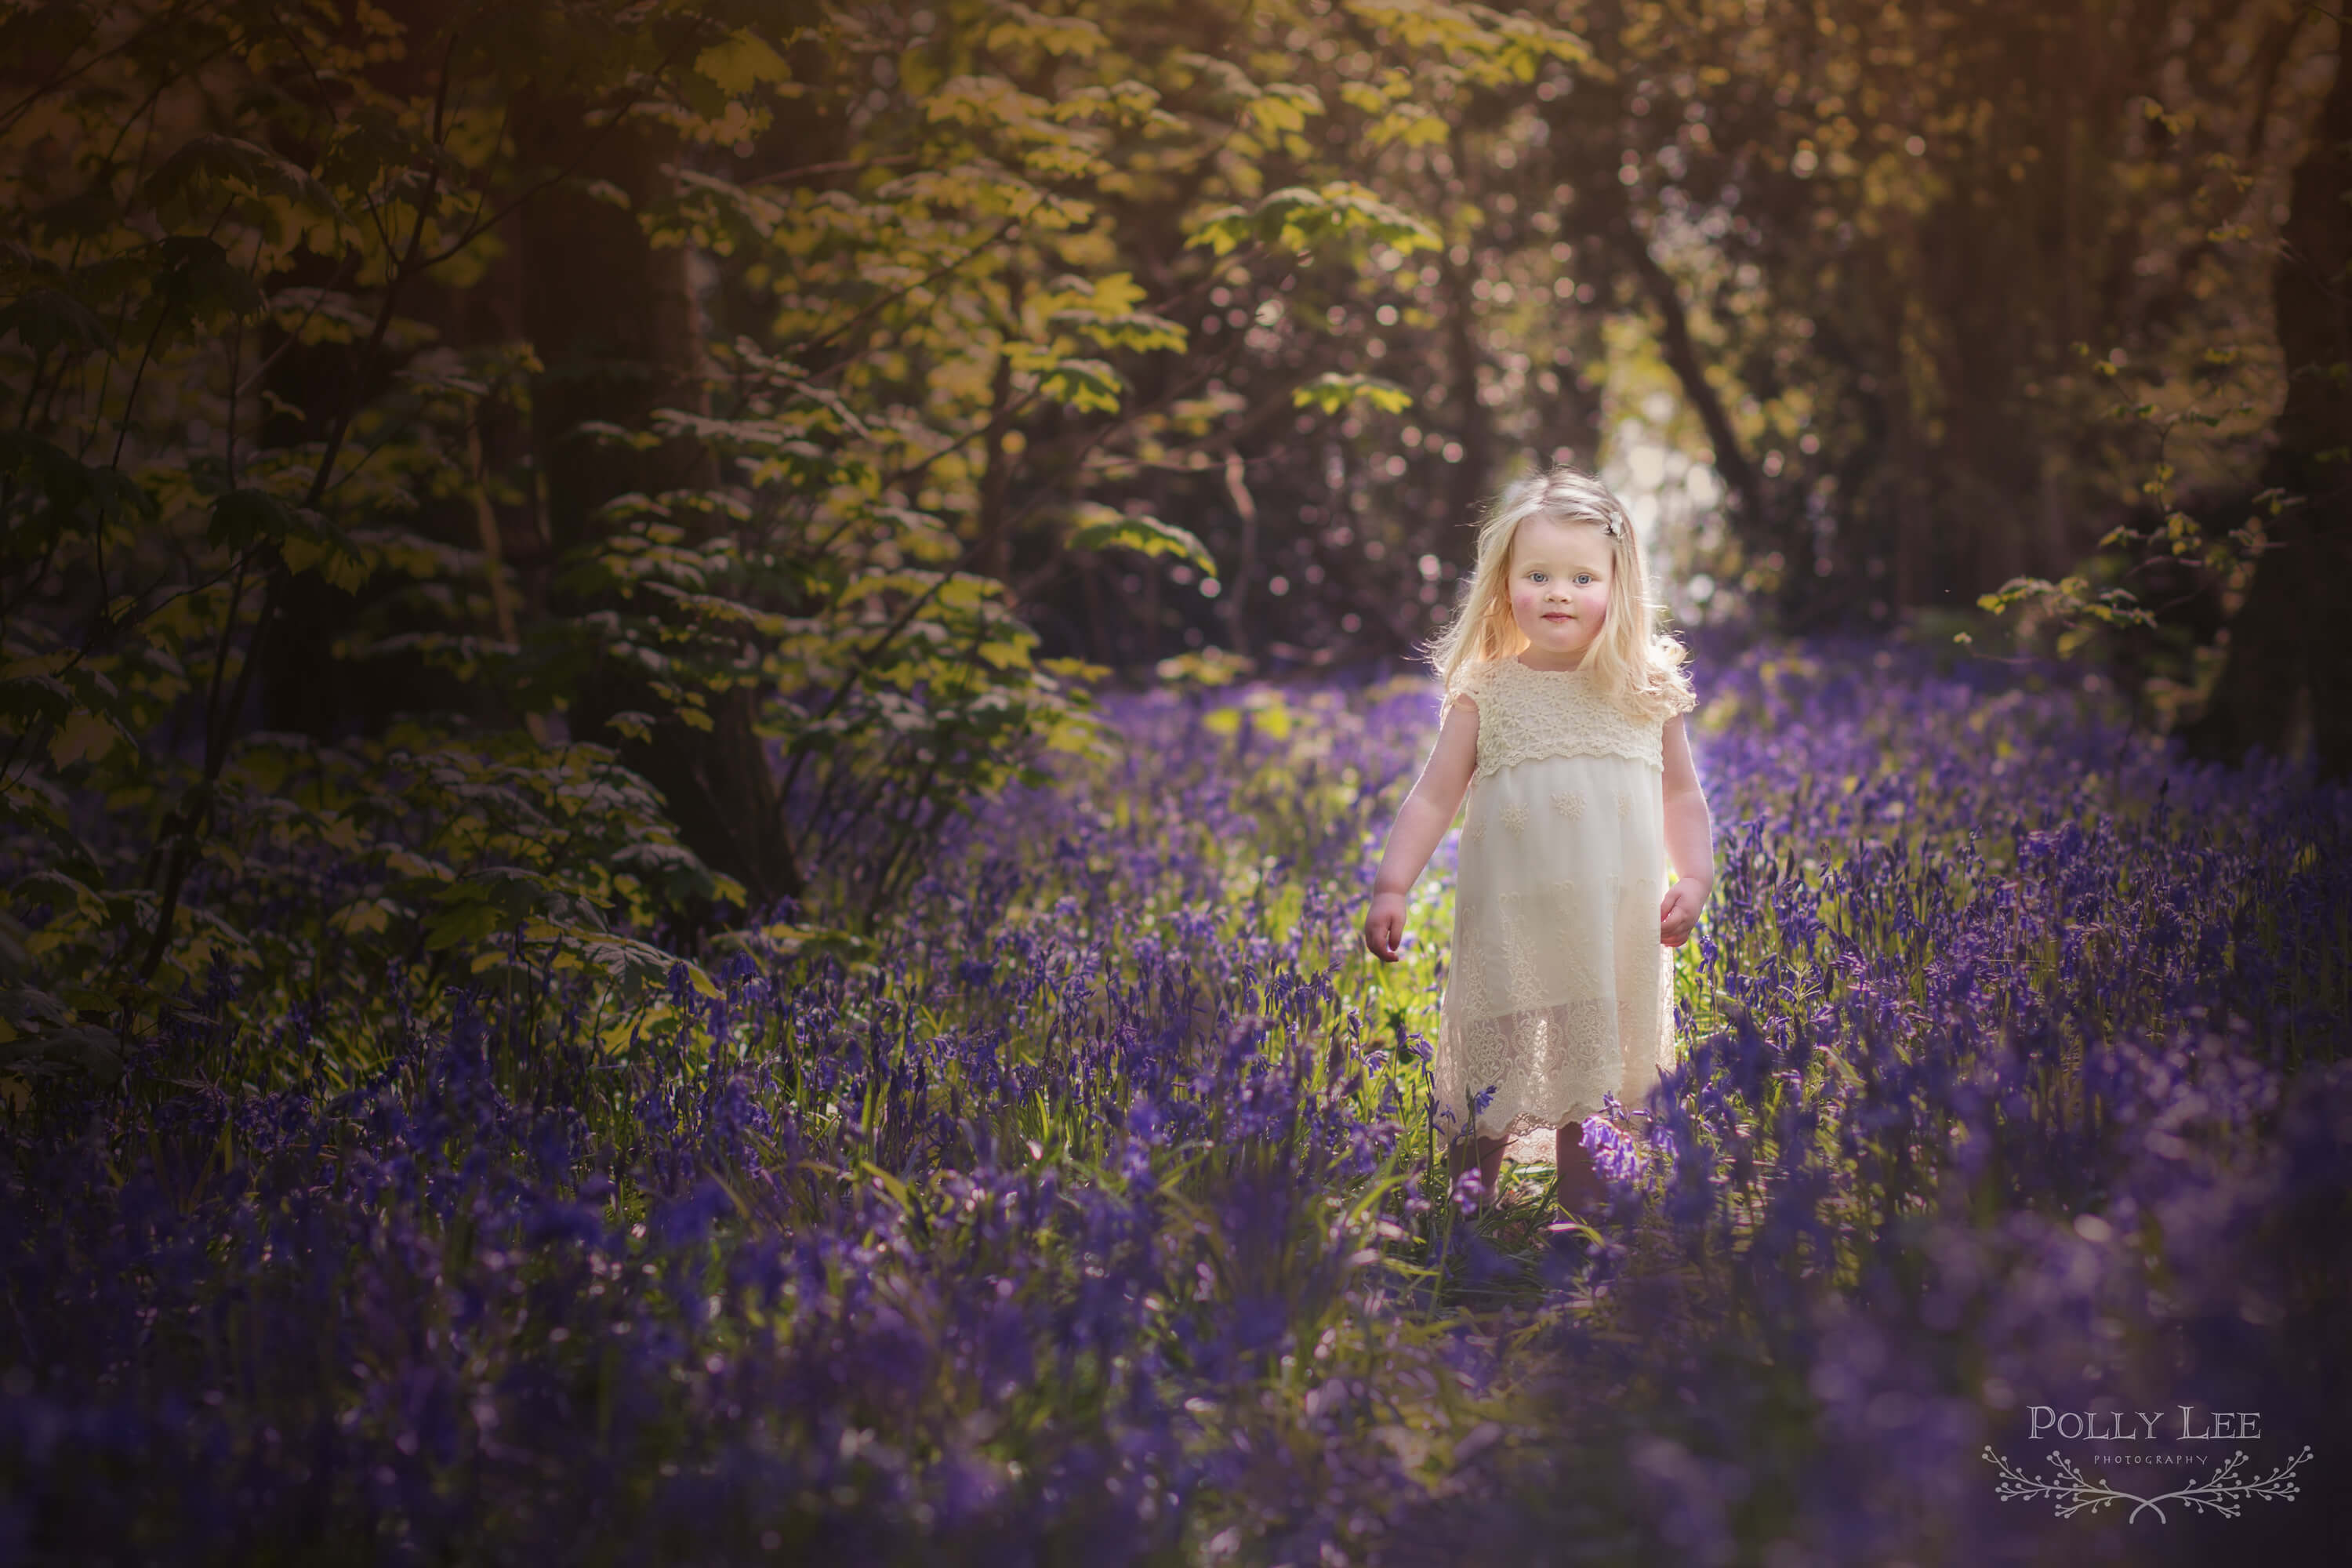 Polly Lee photography